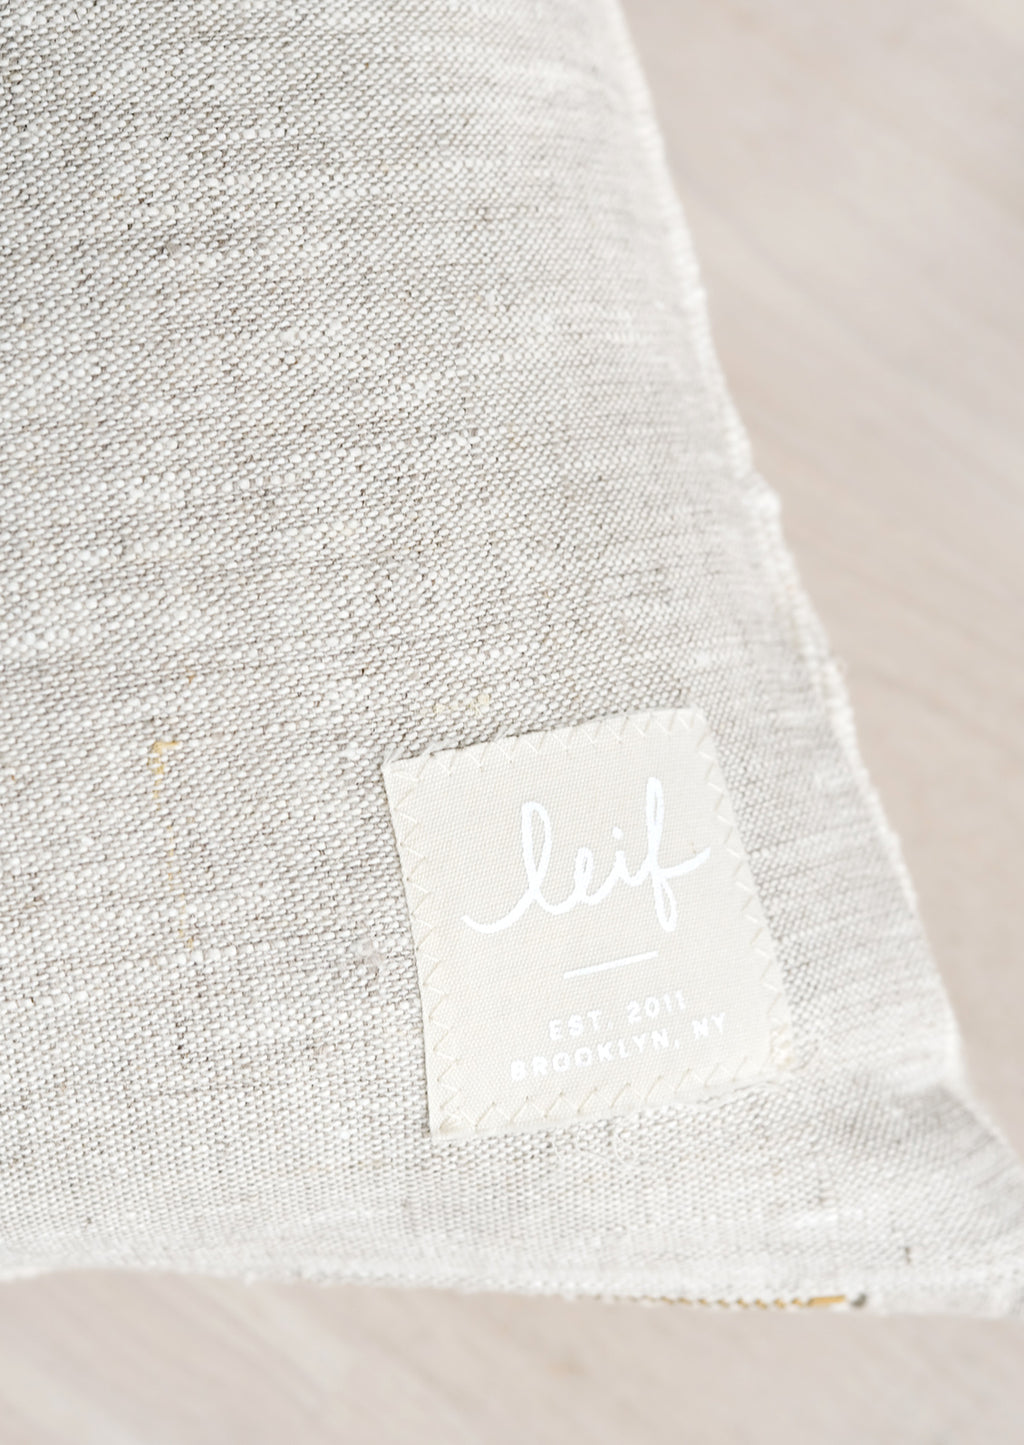 4: Natural linen with hand-stitched square logo patch at bottom corner.